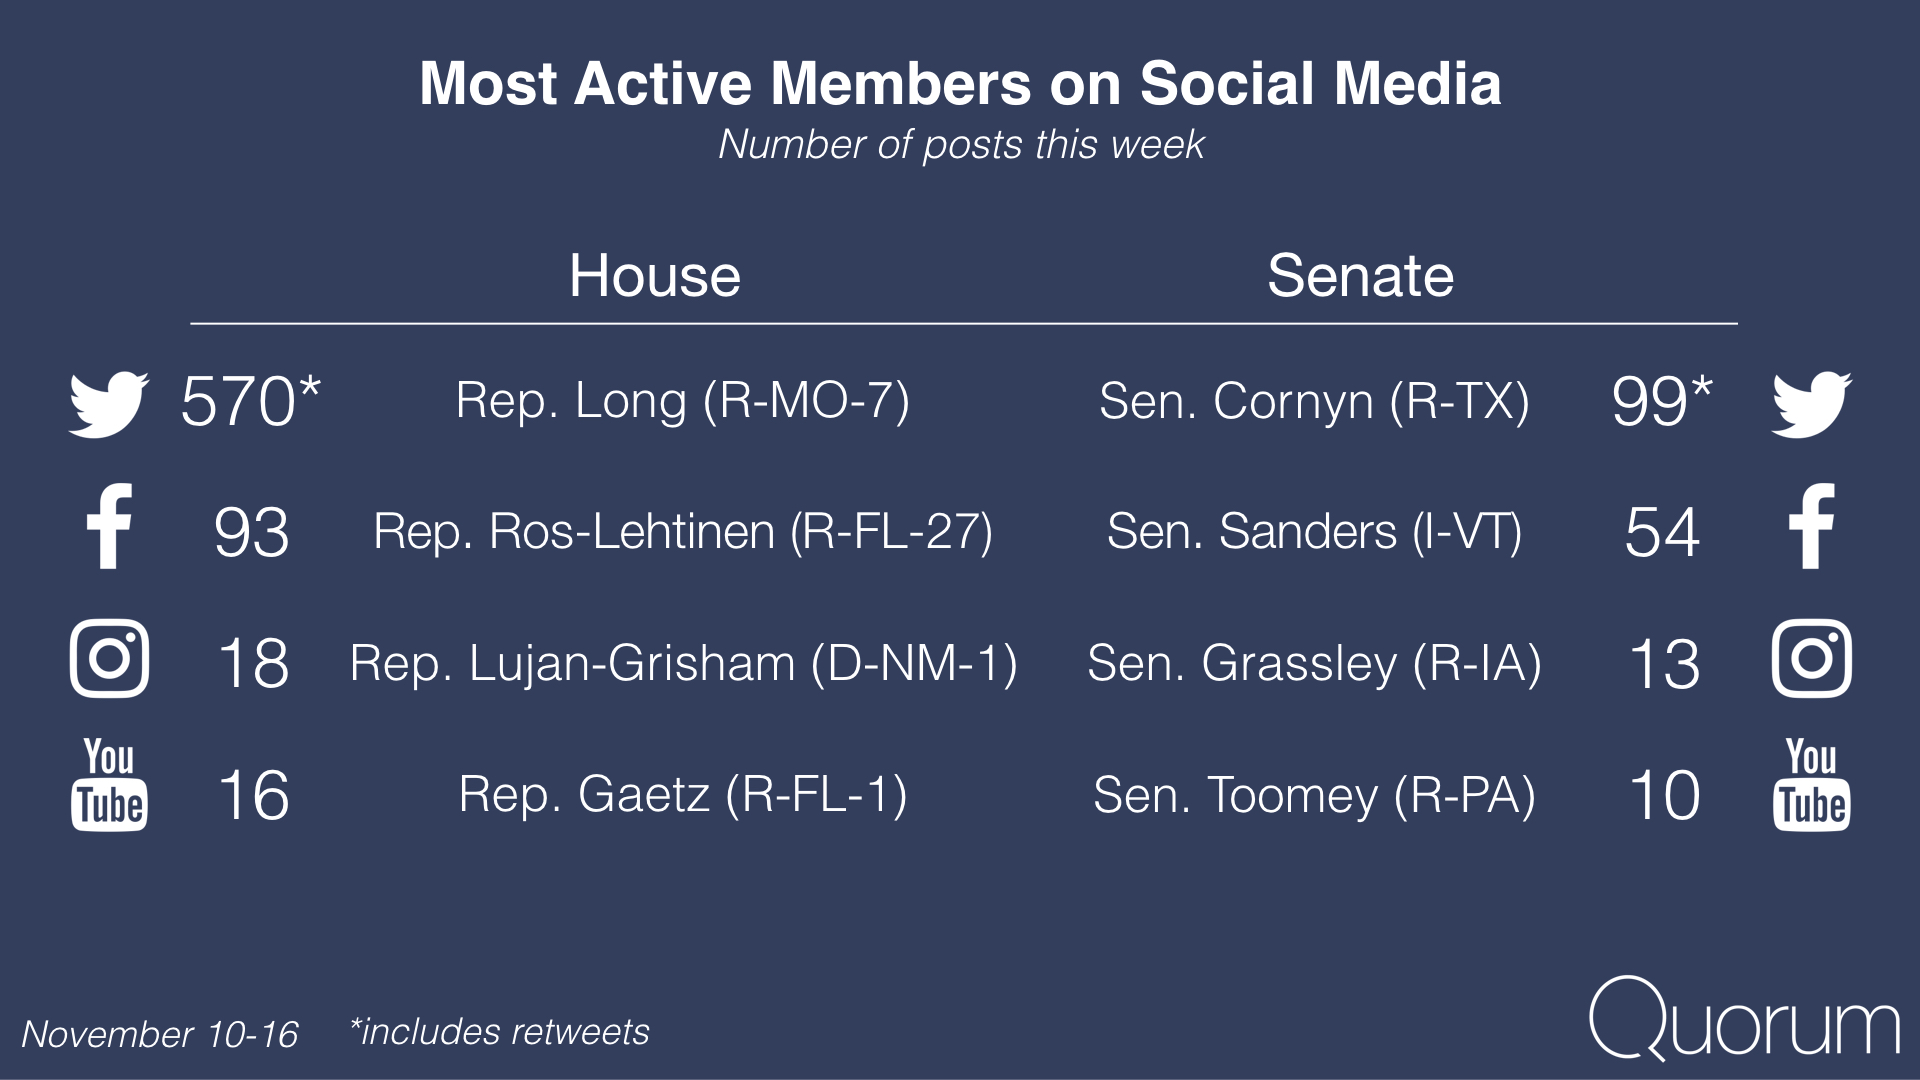 Most active members on social media.